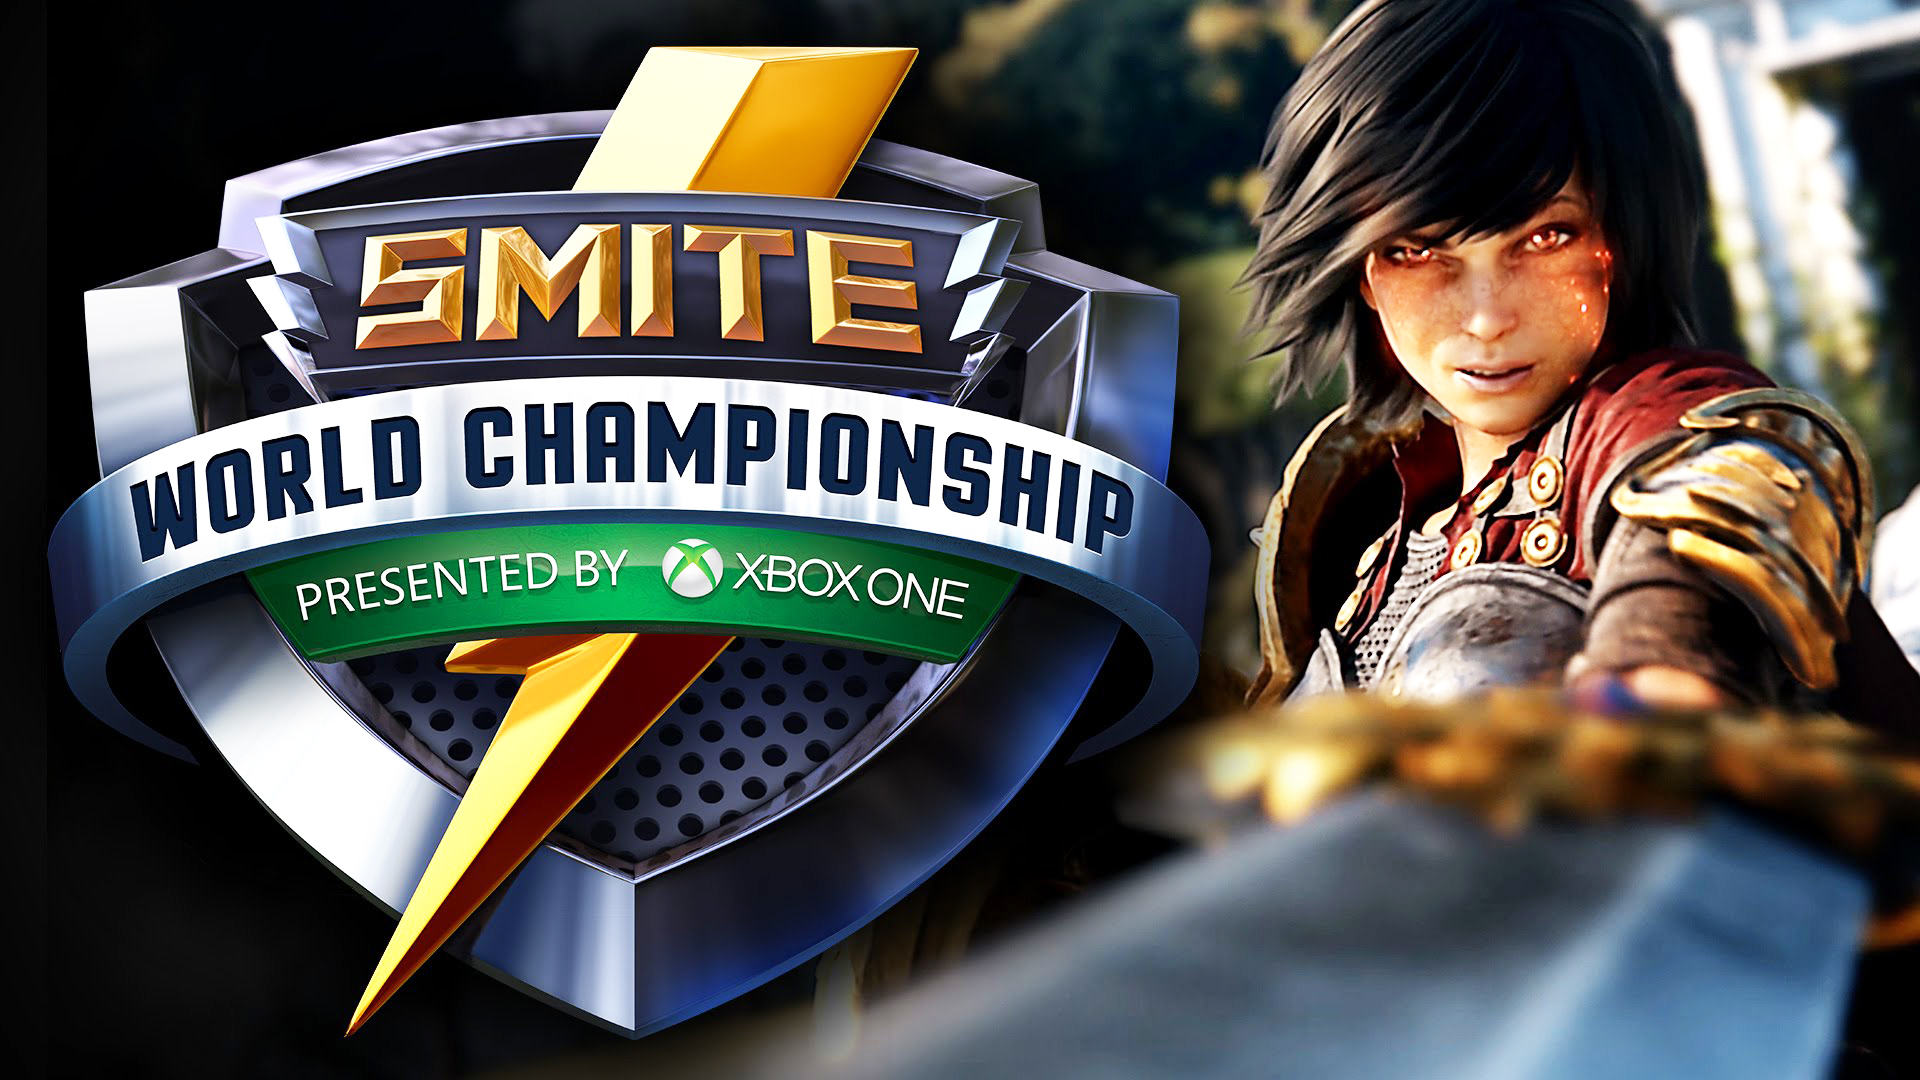 Smite World Championship Backgrounds